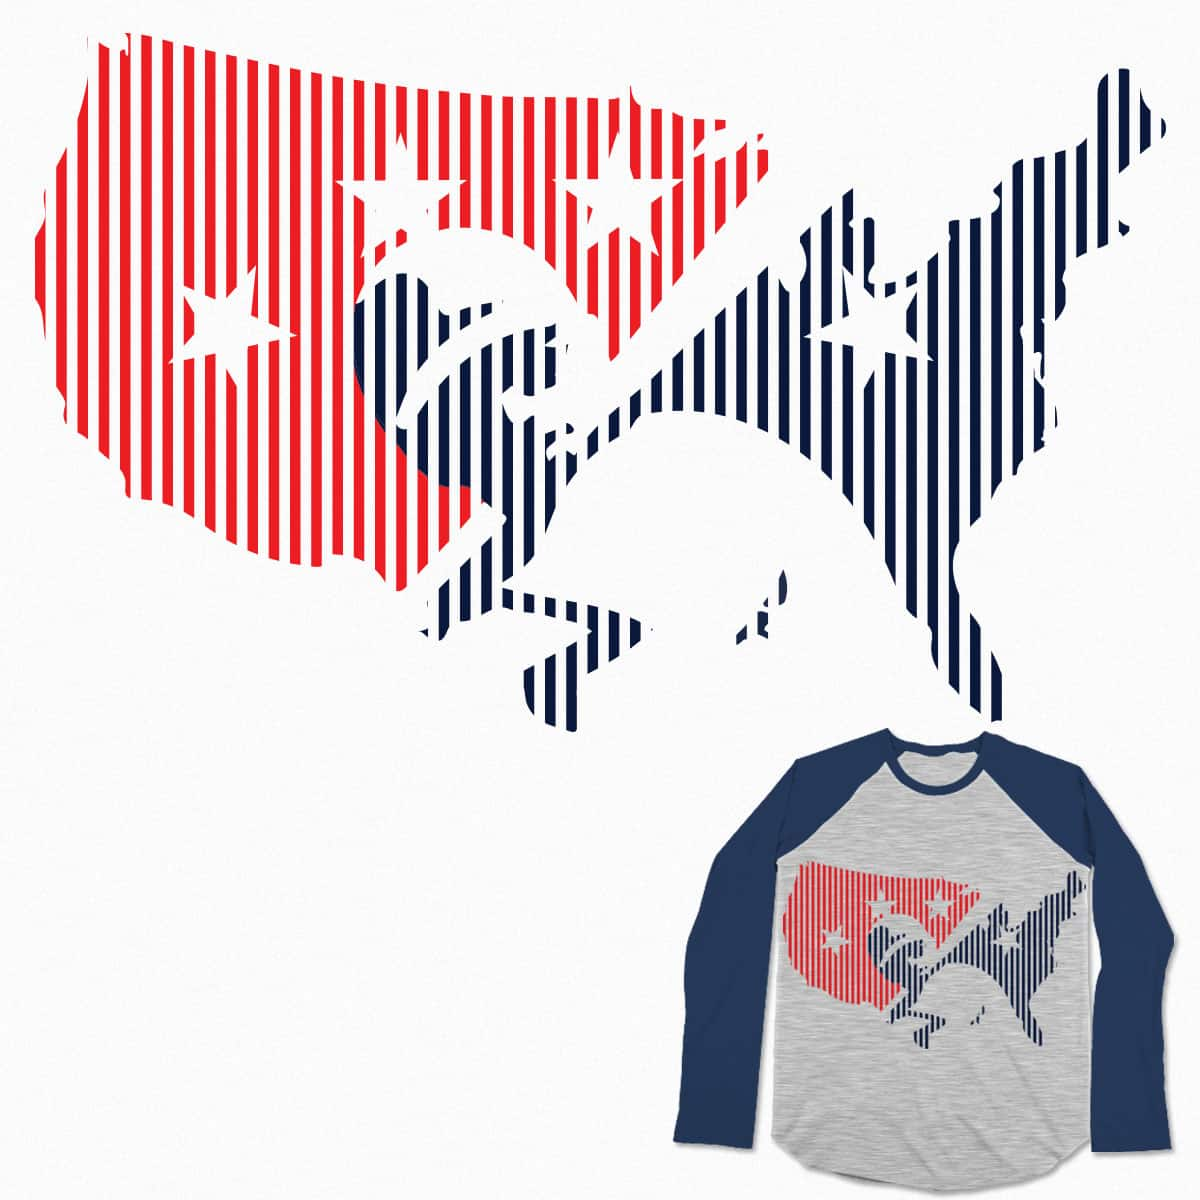 baseball by fashiondesire on Threadless